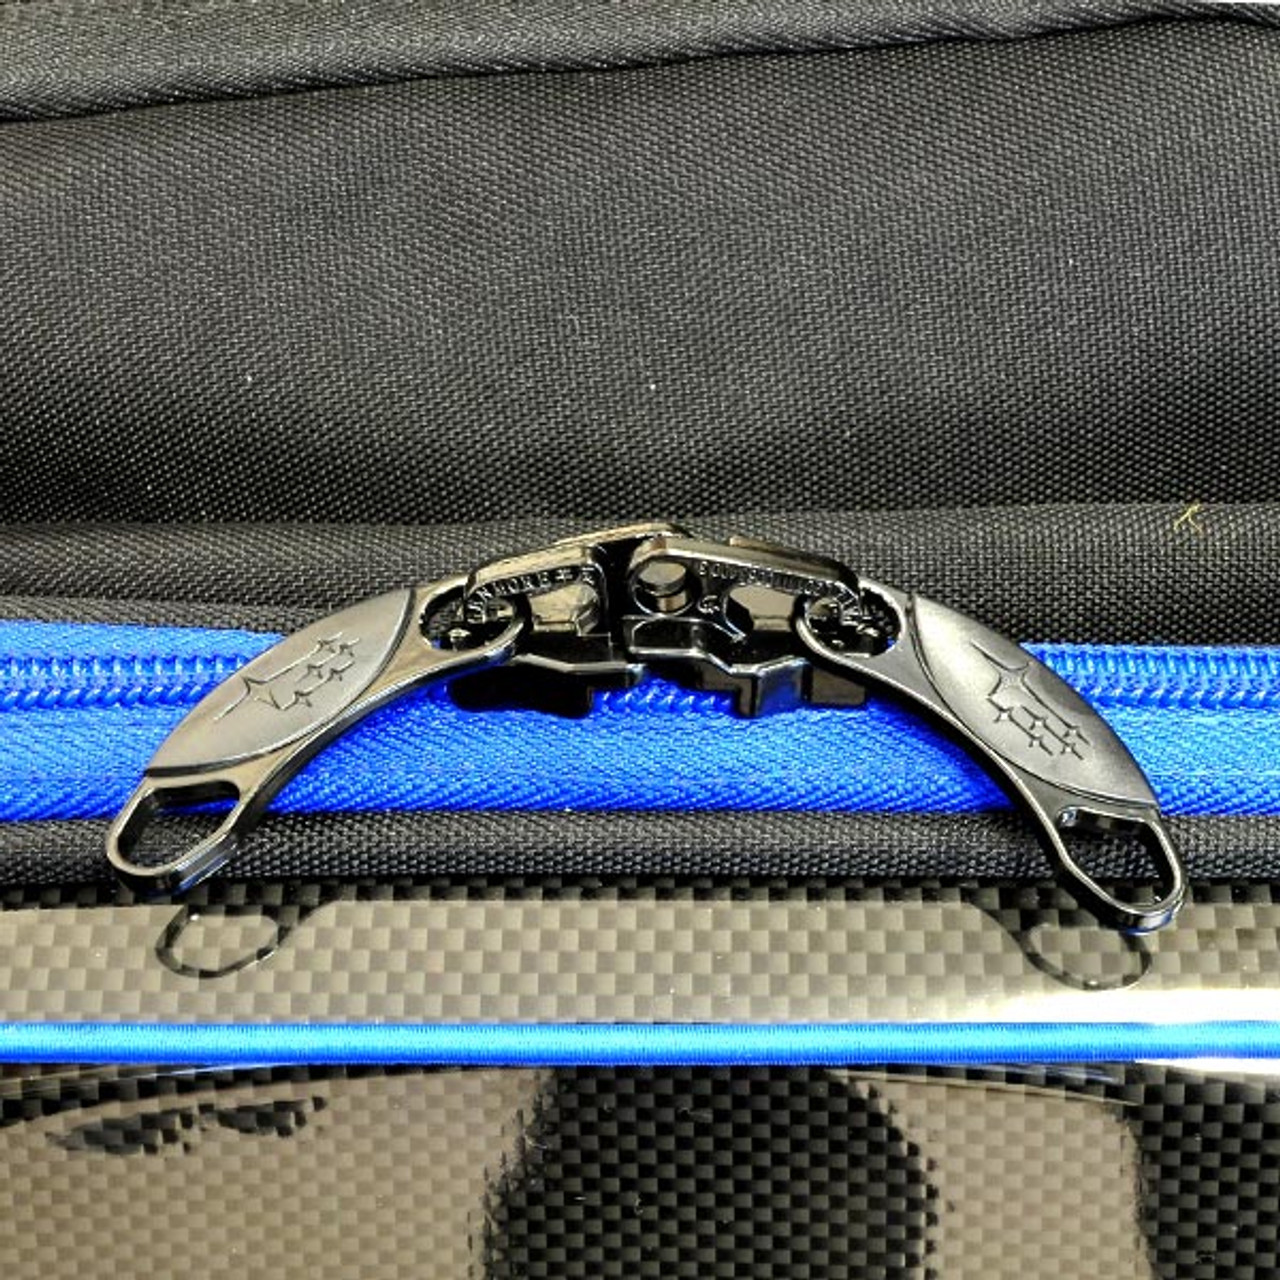 Subaru 3 Way Carry Case zipper detail at AVOJDM.com